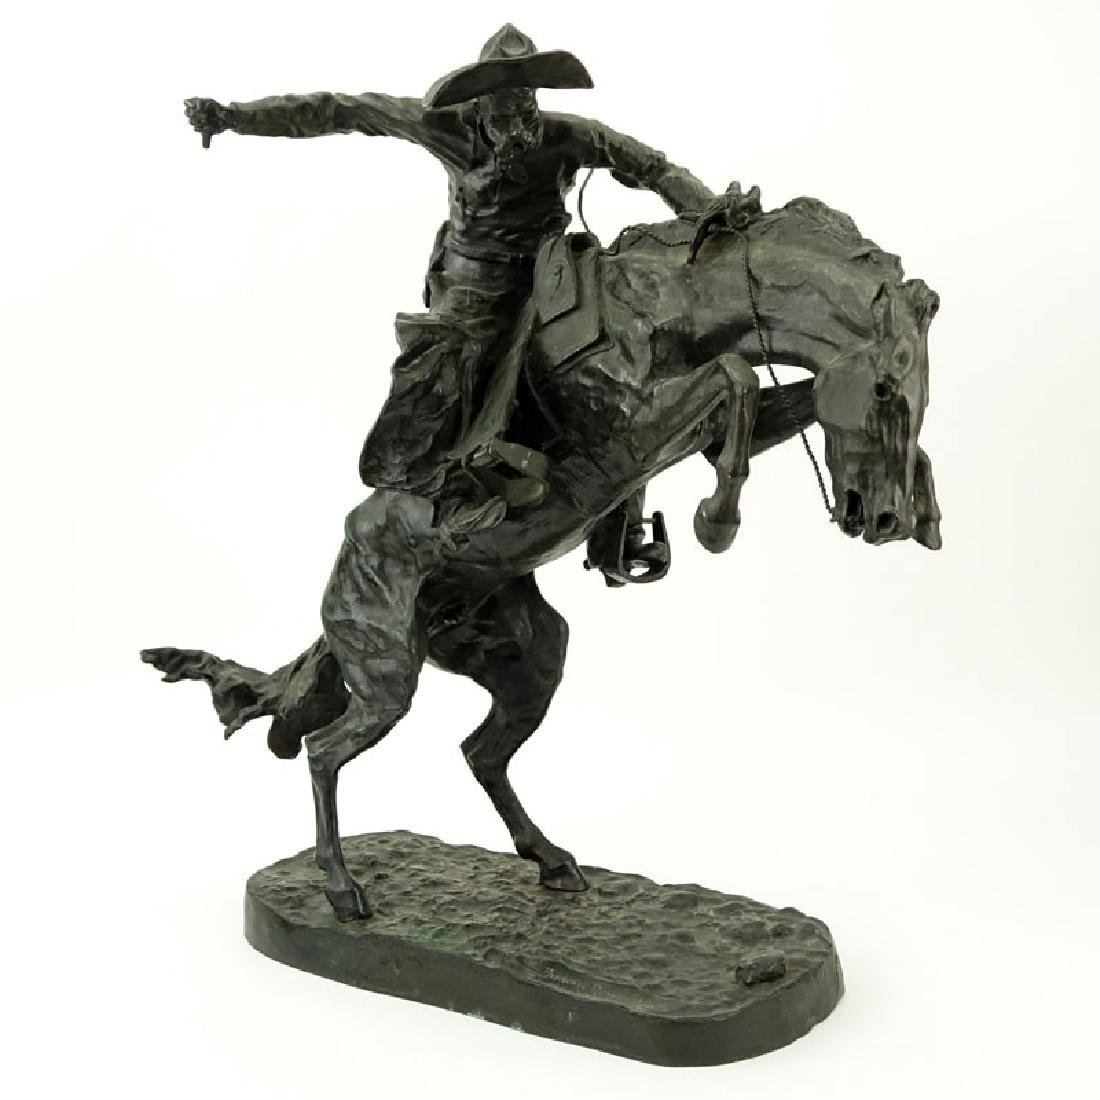 After: Frederic Remington, American (1861-1909) Bronze